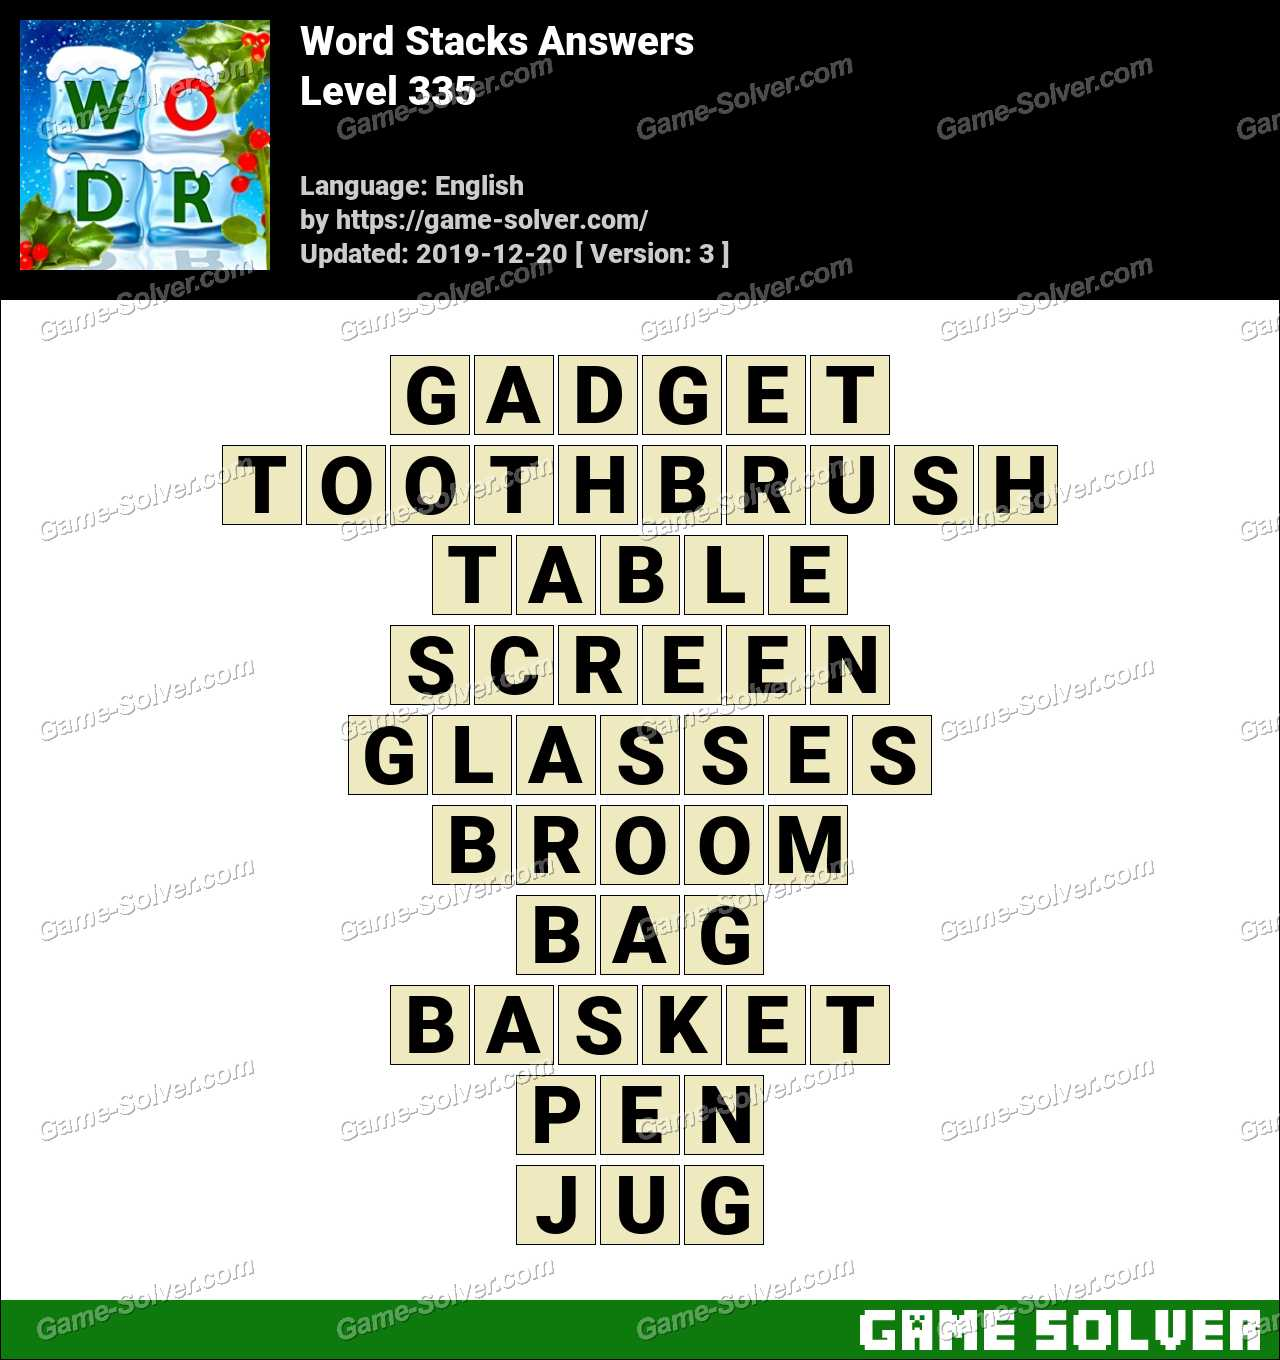 Word Stacks Level 335 Answers